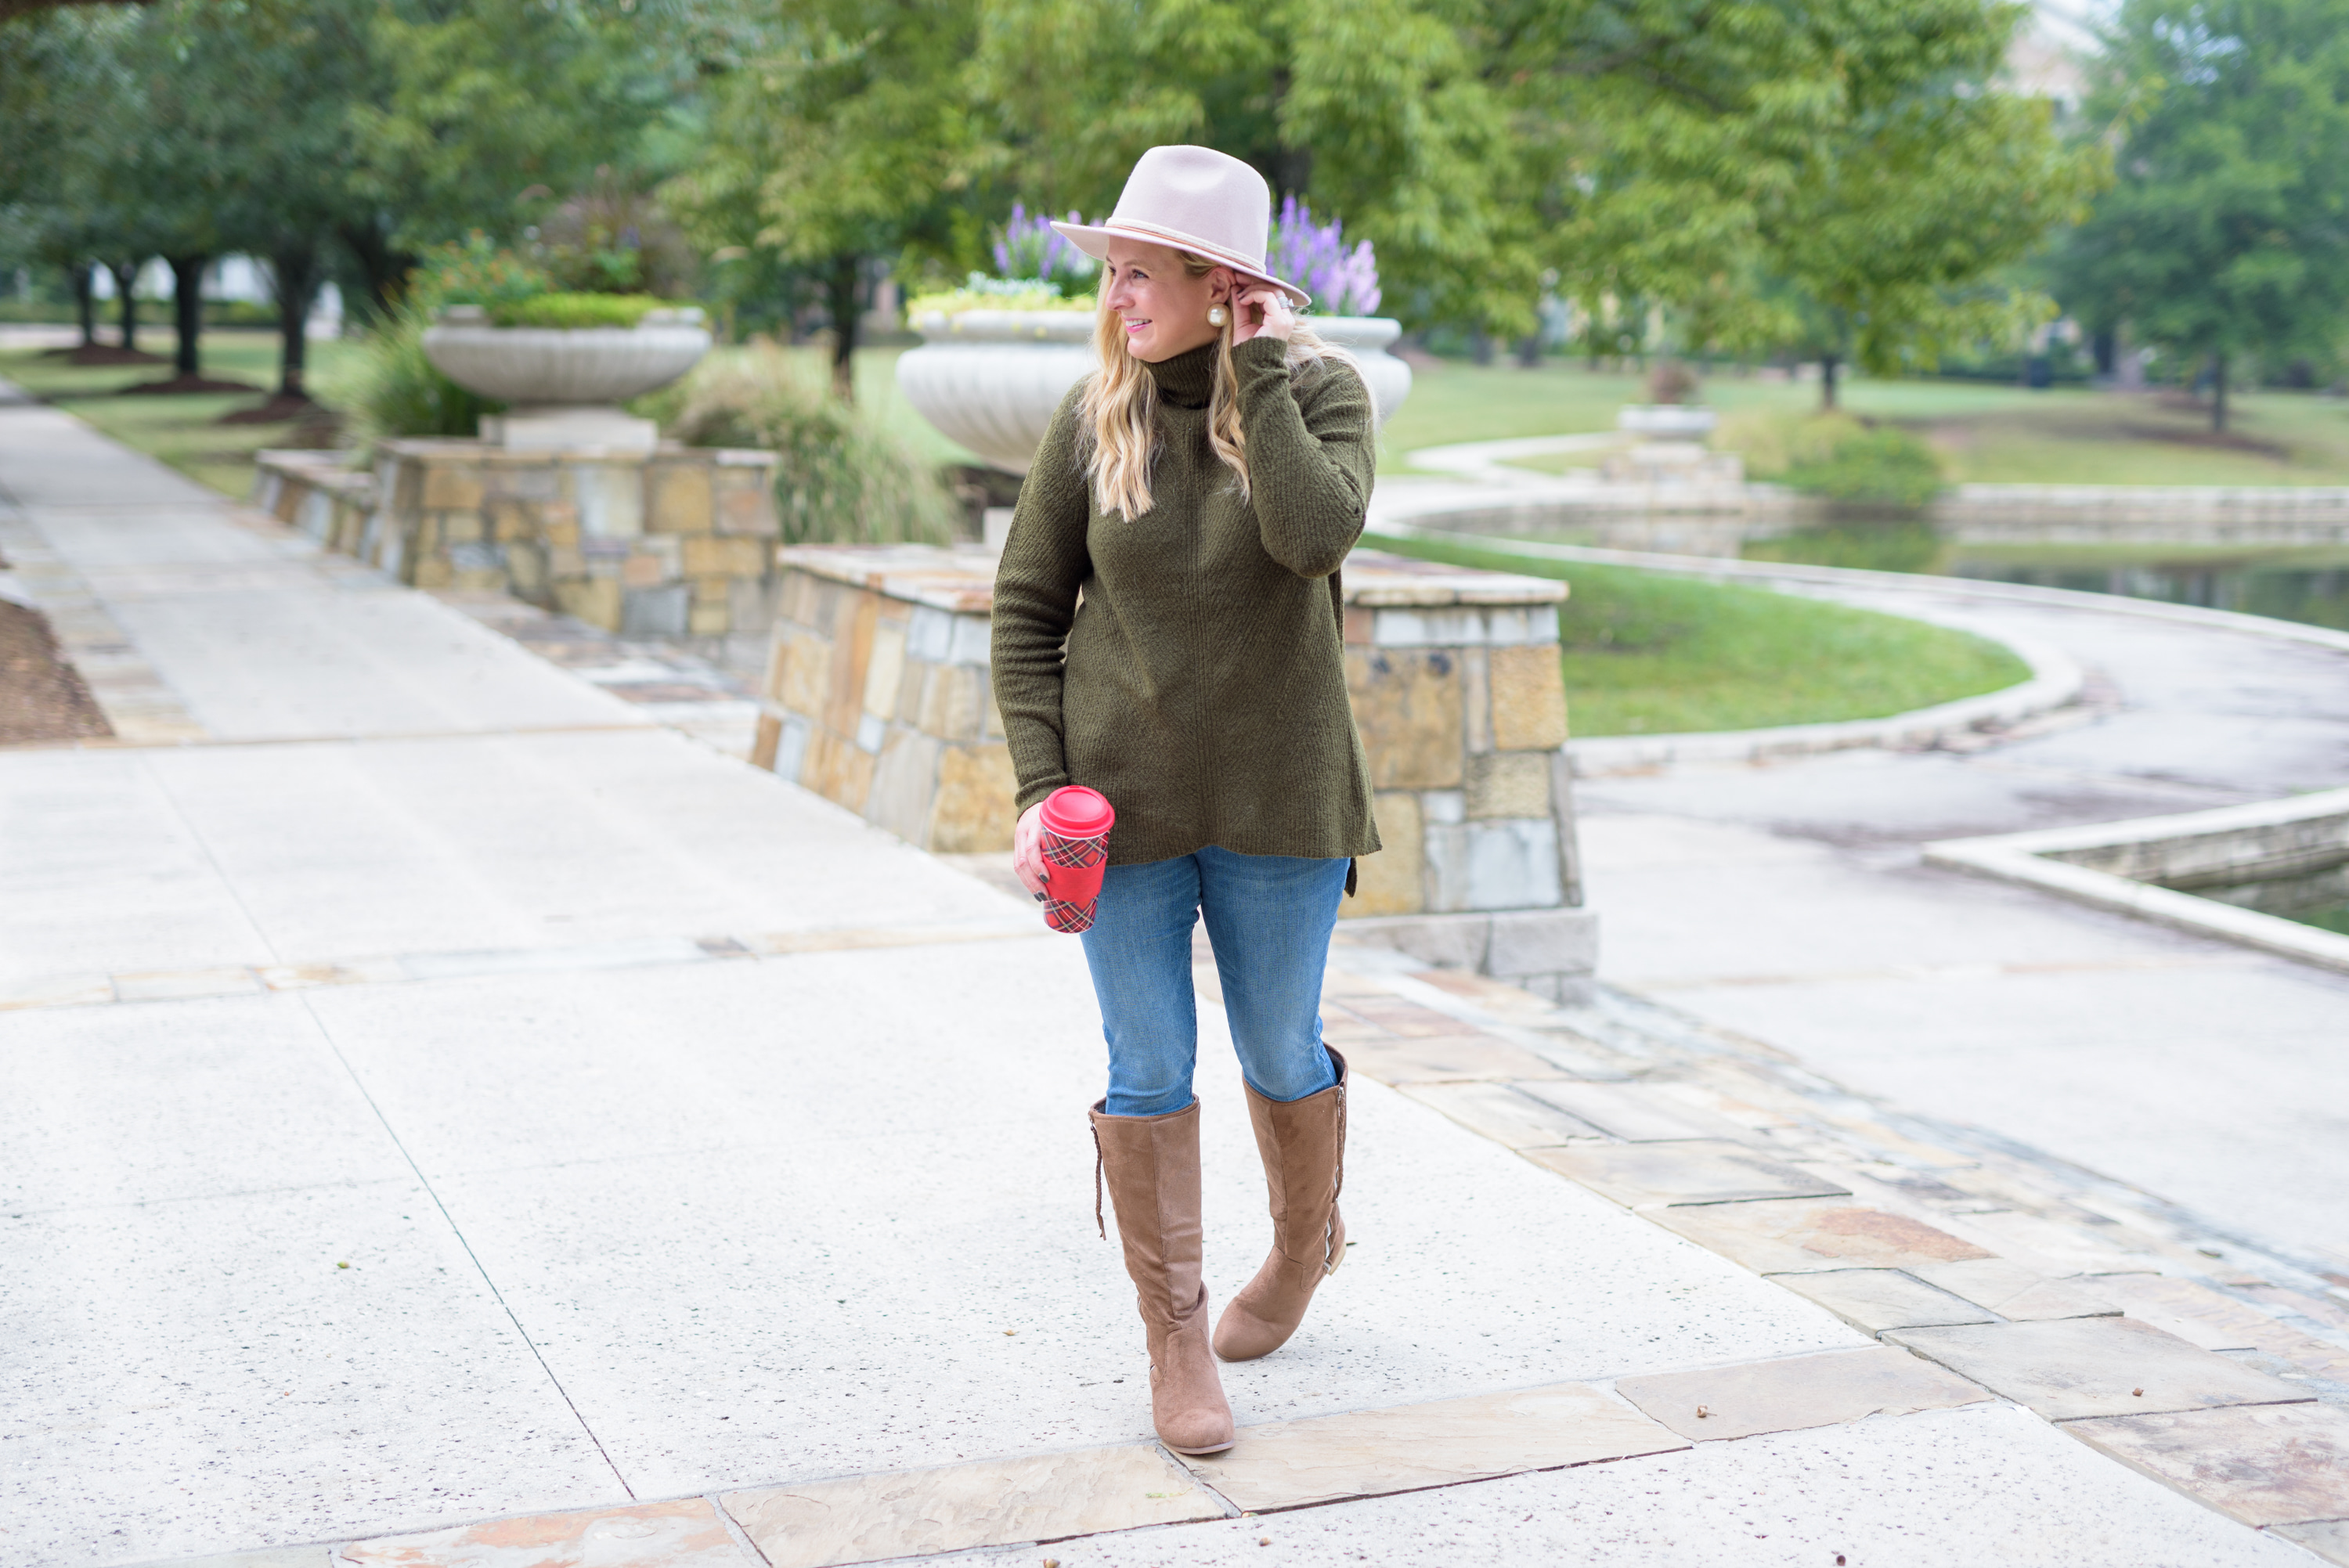 Knee High Boots by popular Houston fashion blog, Fancy Ashley: image of a woman standing outside and wearing a Nordstrom Rack Sweet Romeo Abstract Rib Turtleneck Tunic, Nordstrom Rack KUT from the Kloth Carlo Raw Crop Hem Skinny Jeans, Nordstrom Rack JOURNEE Collection Sanora Knee High Boot, and Nordstrom Rack Frye Braided Crown Felted Fedora Hat.